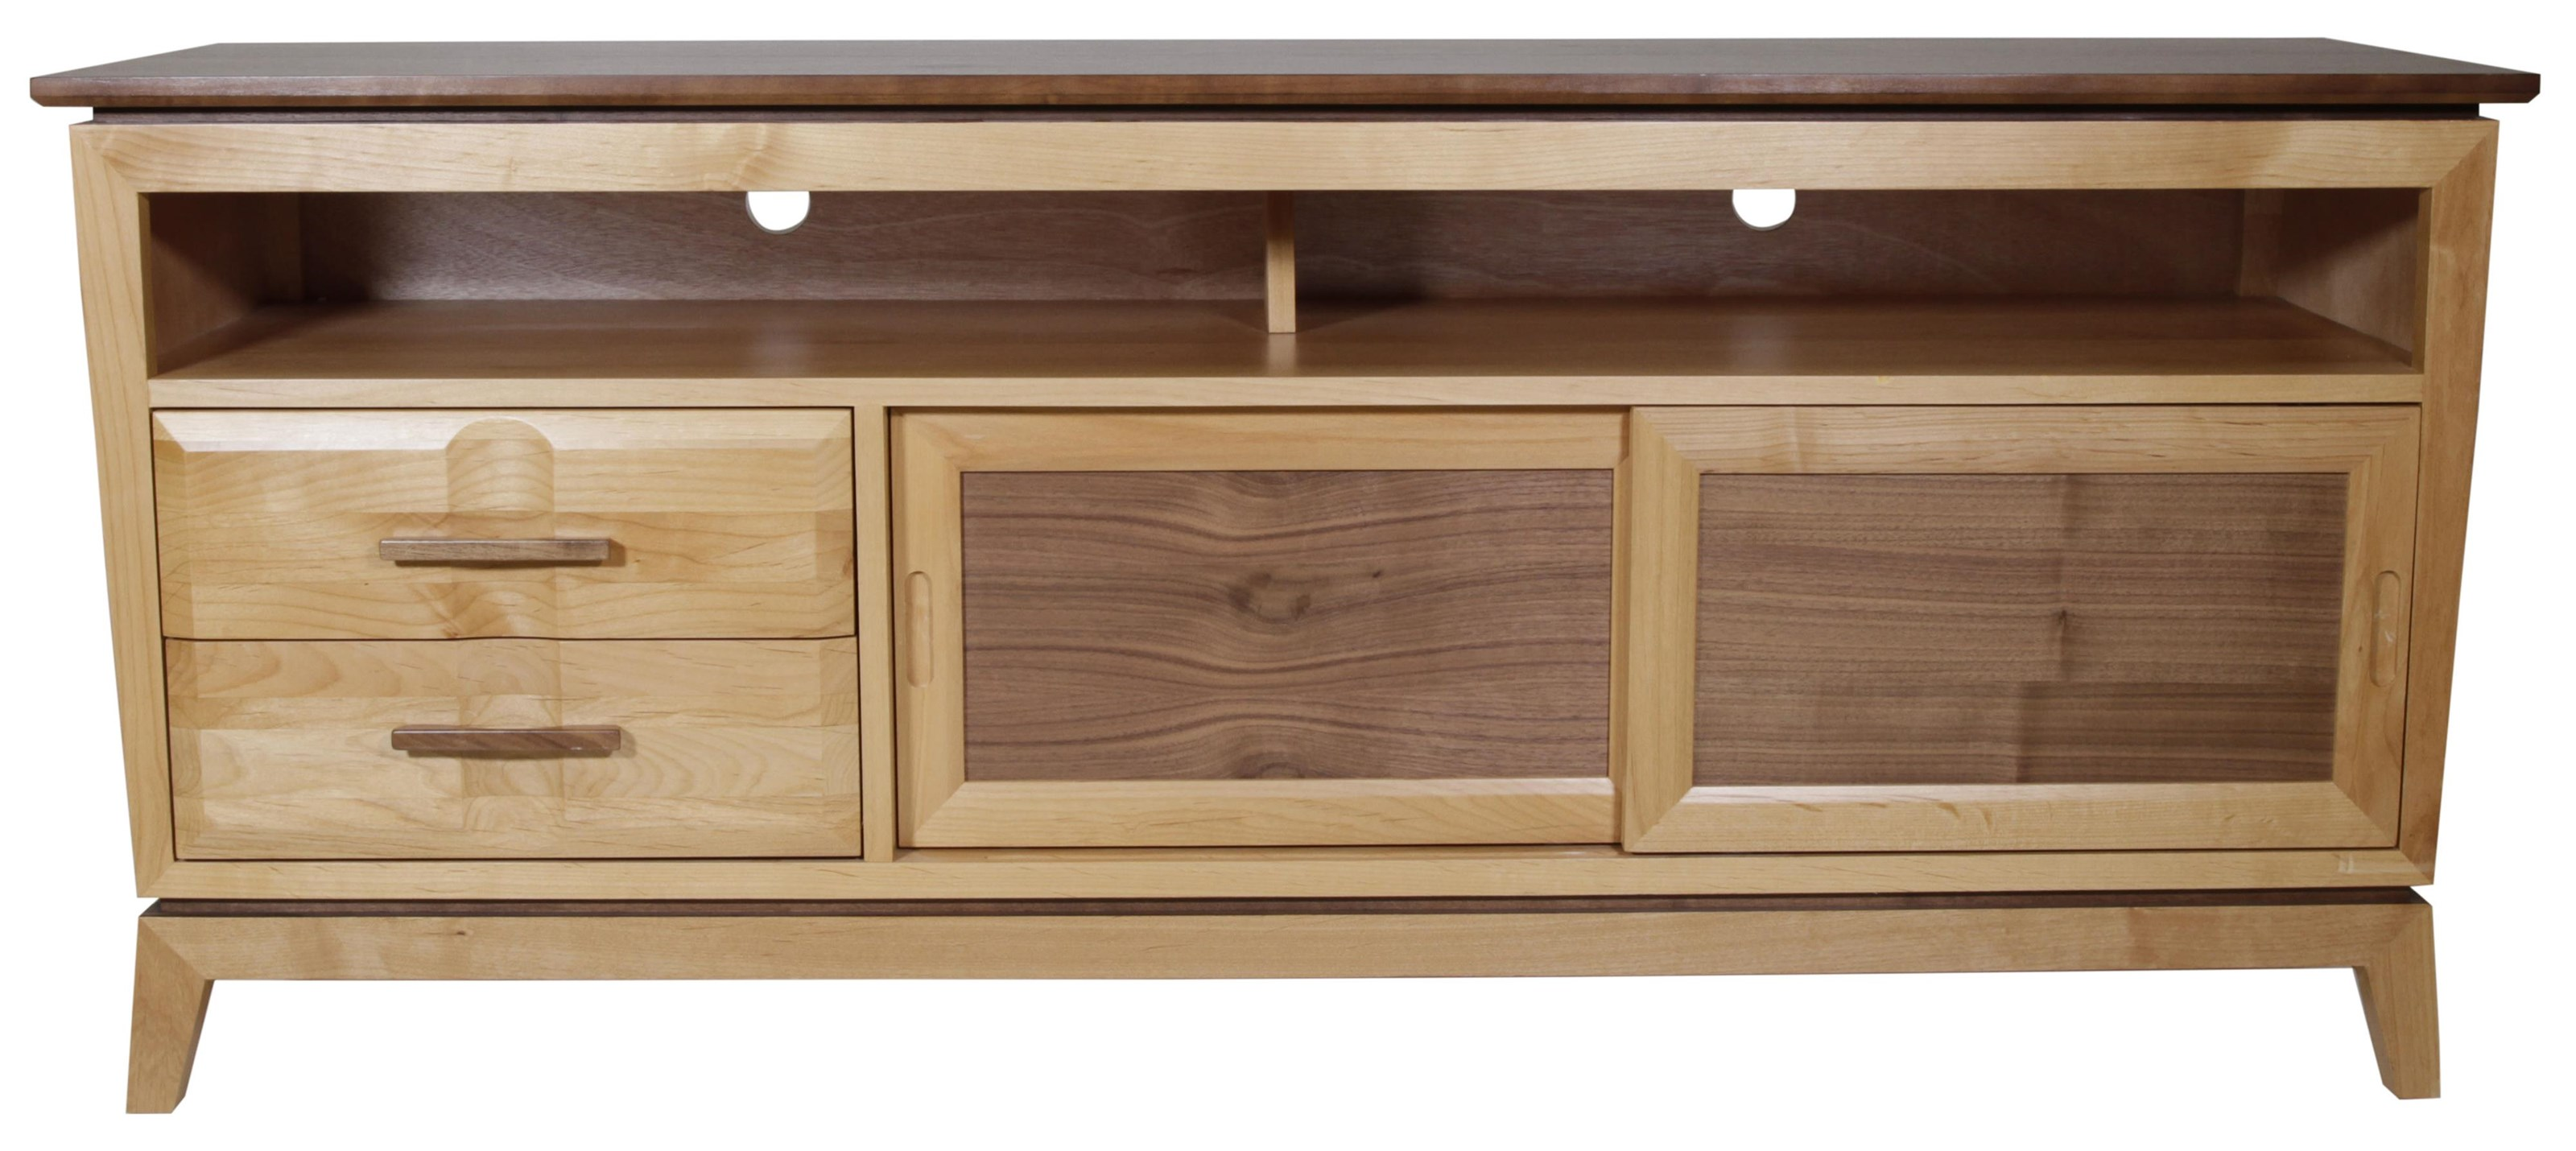 Addison TV Console by Whittier Wood at HomeWorld Furniture